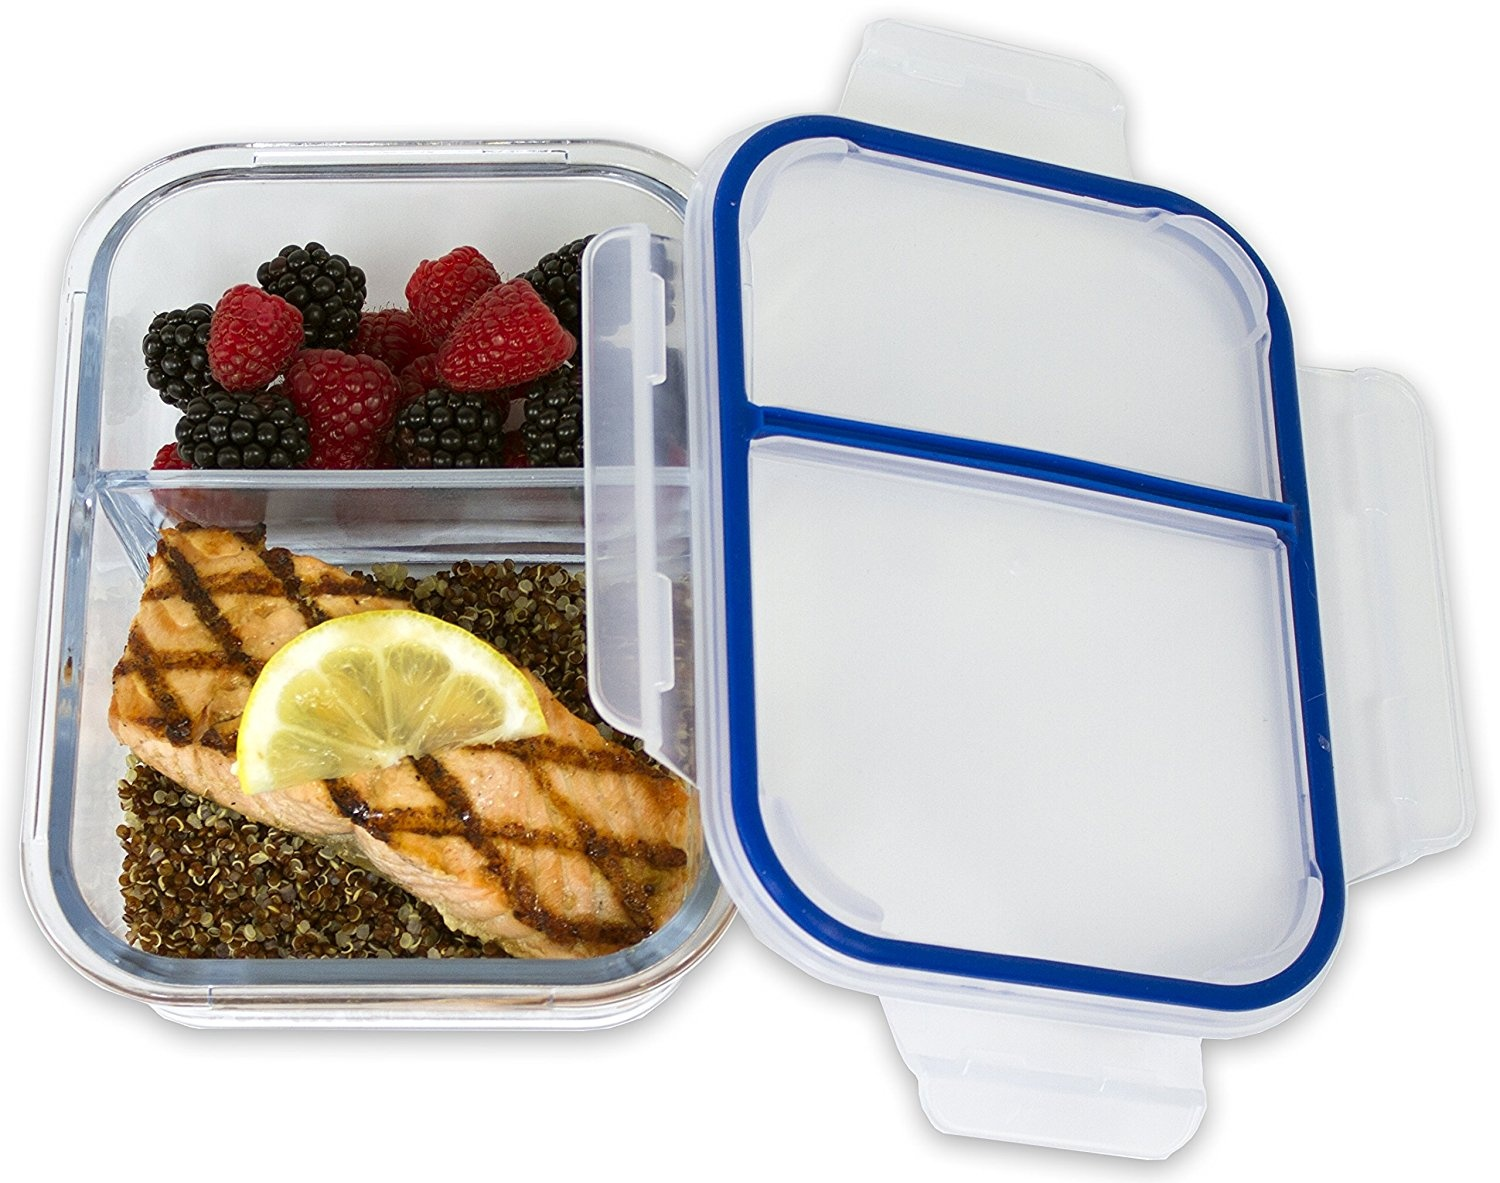 Tupperware Kitchen: Buy Online from Fishpond.com.au